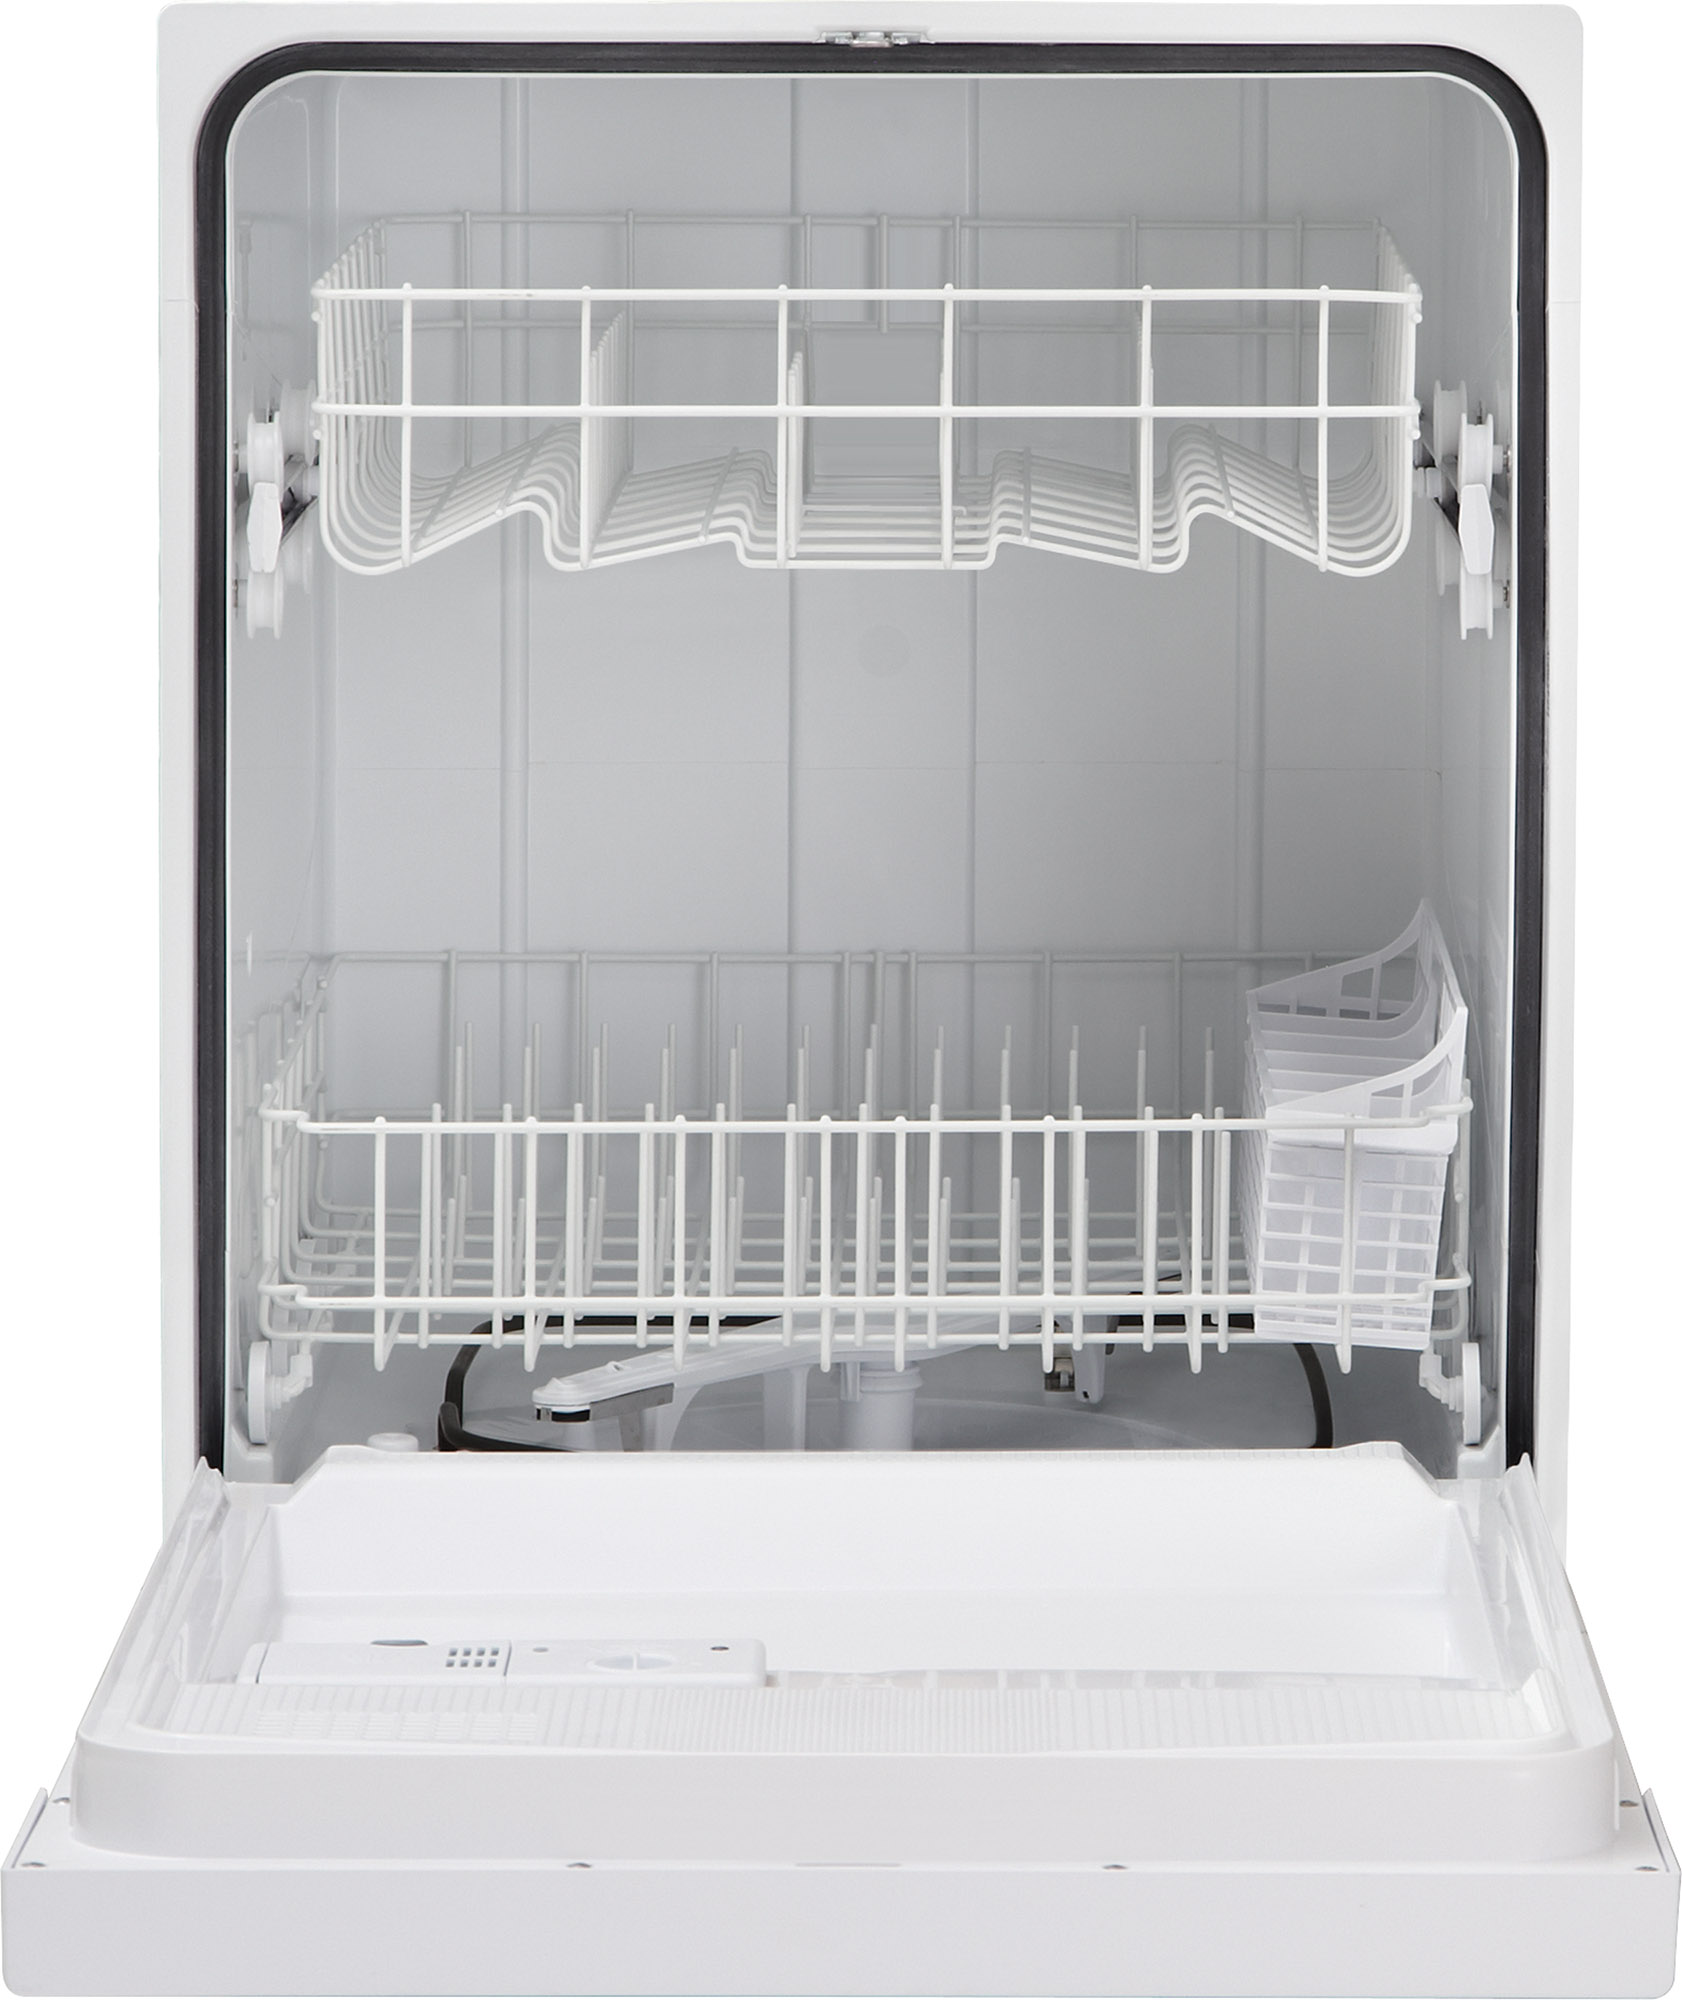 "Kenmore 14019 24"" Built-In Dishwasher - Black"